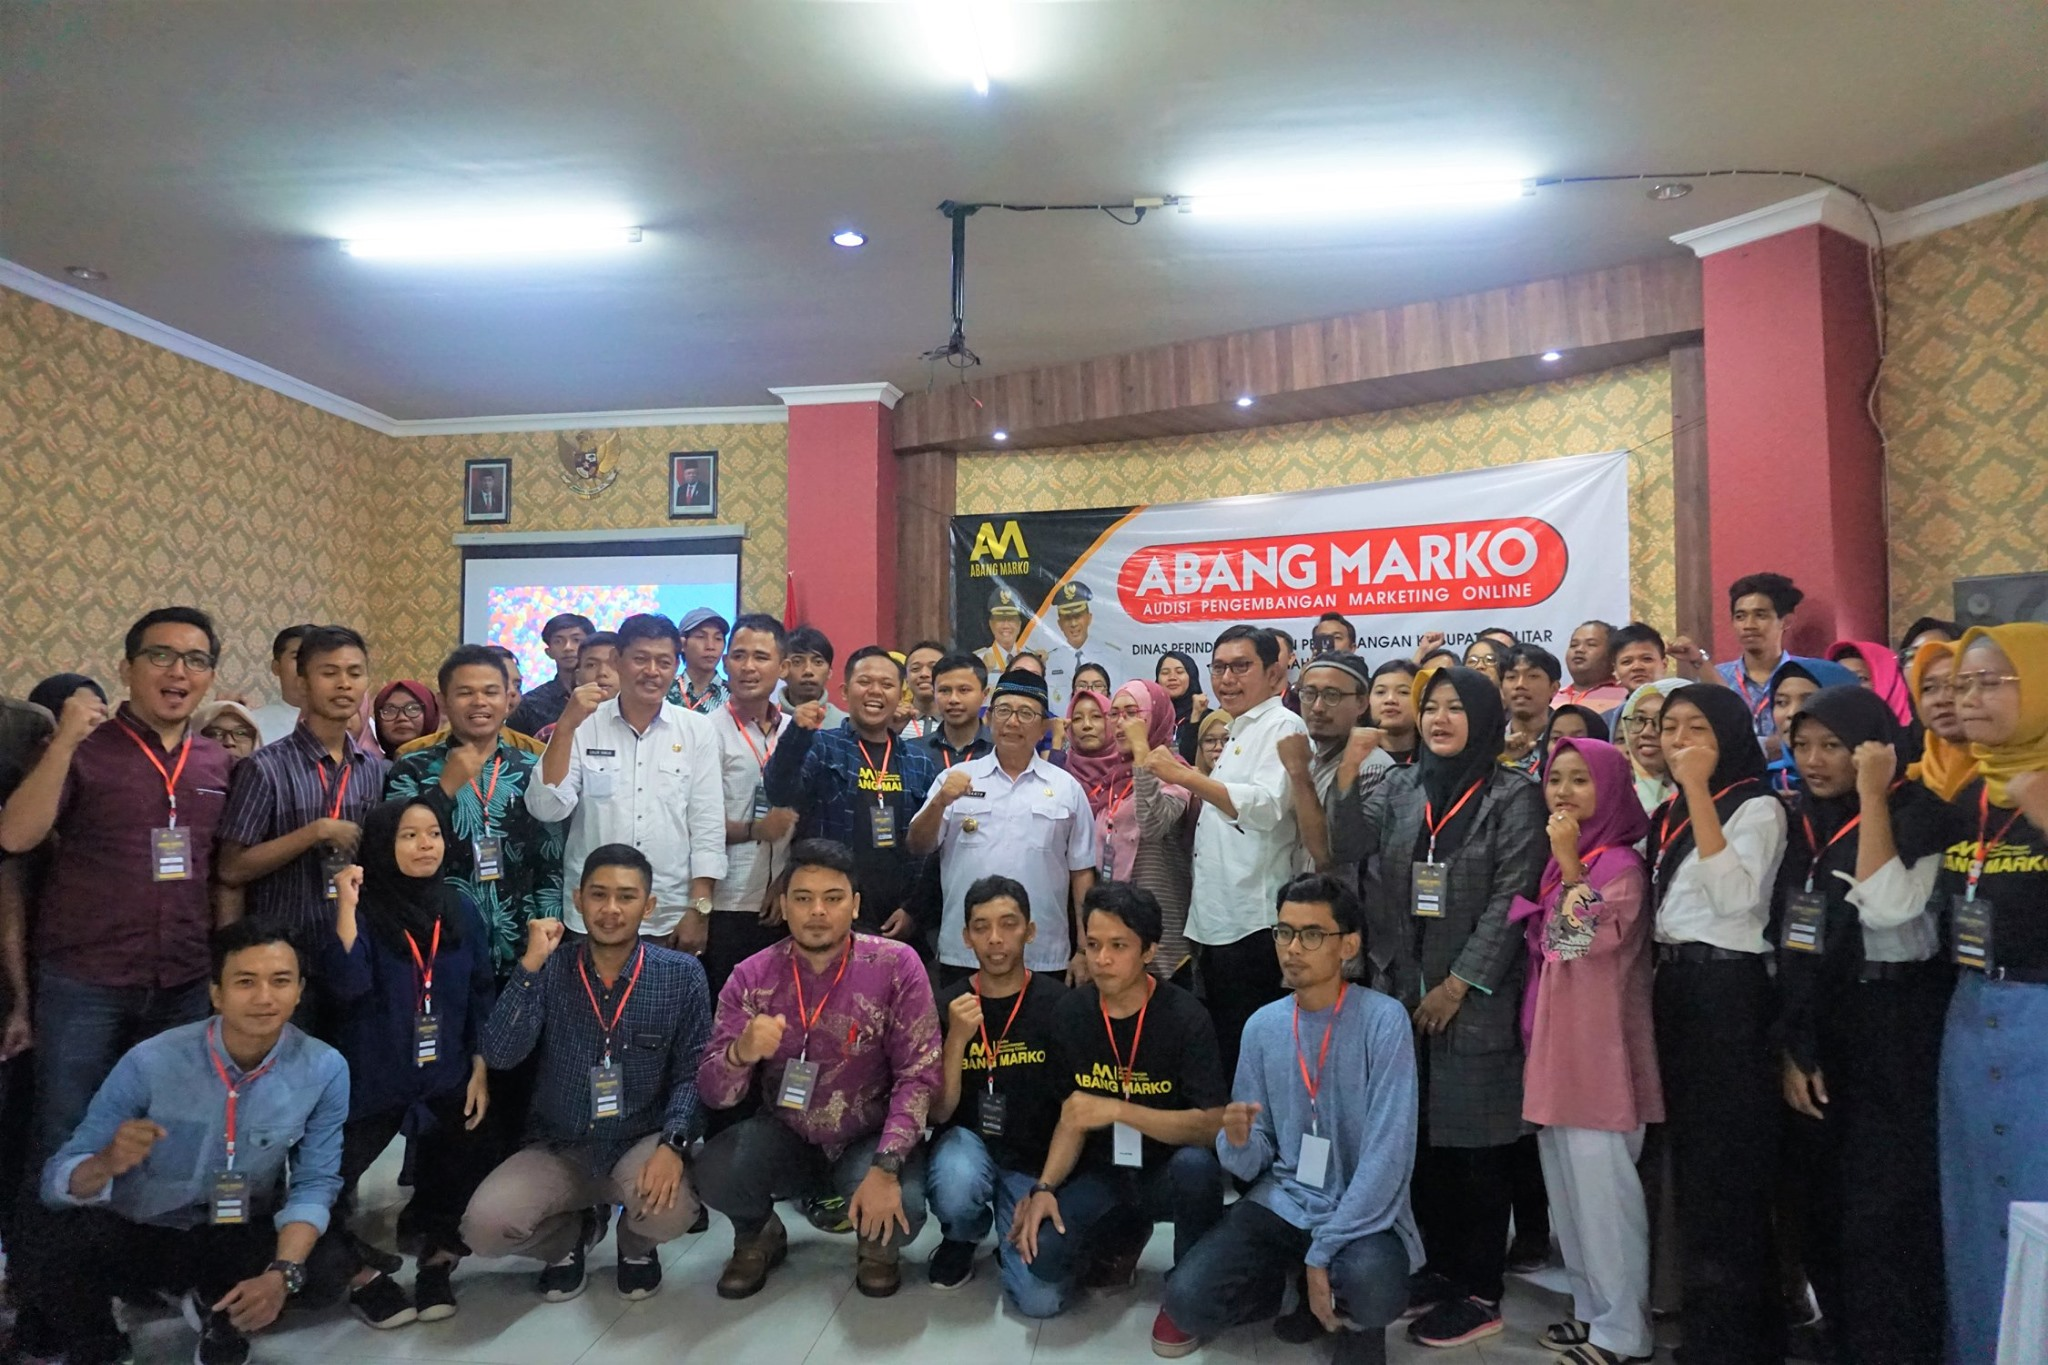 Audisi Pengembangan Marketing Online (ABANG MARKO) 2020